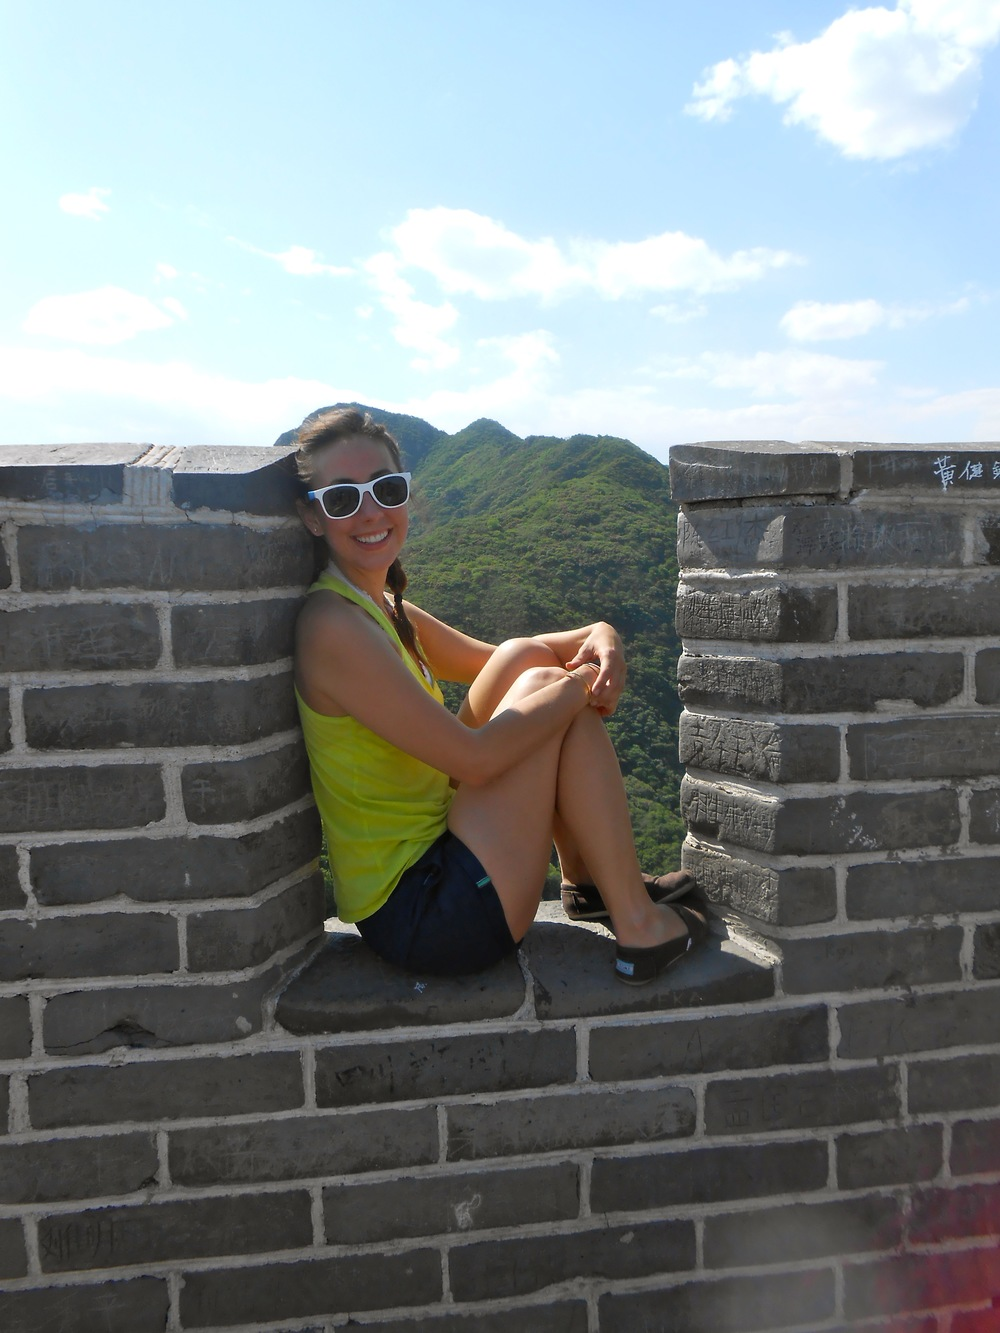 A beach and a margarita, or the Great Wall of China? Easy decision for me!